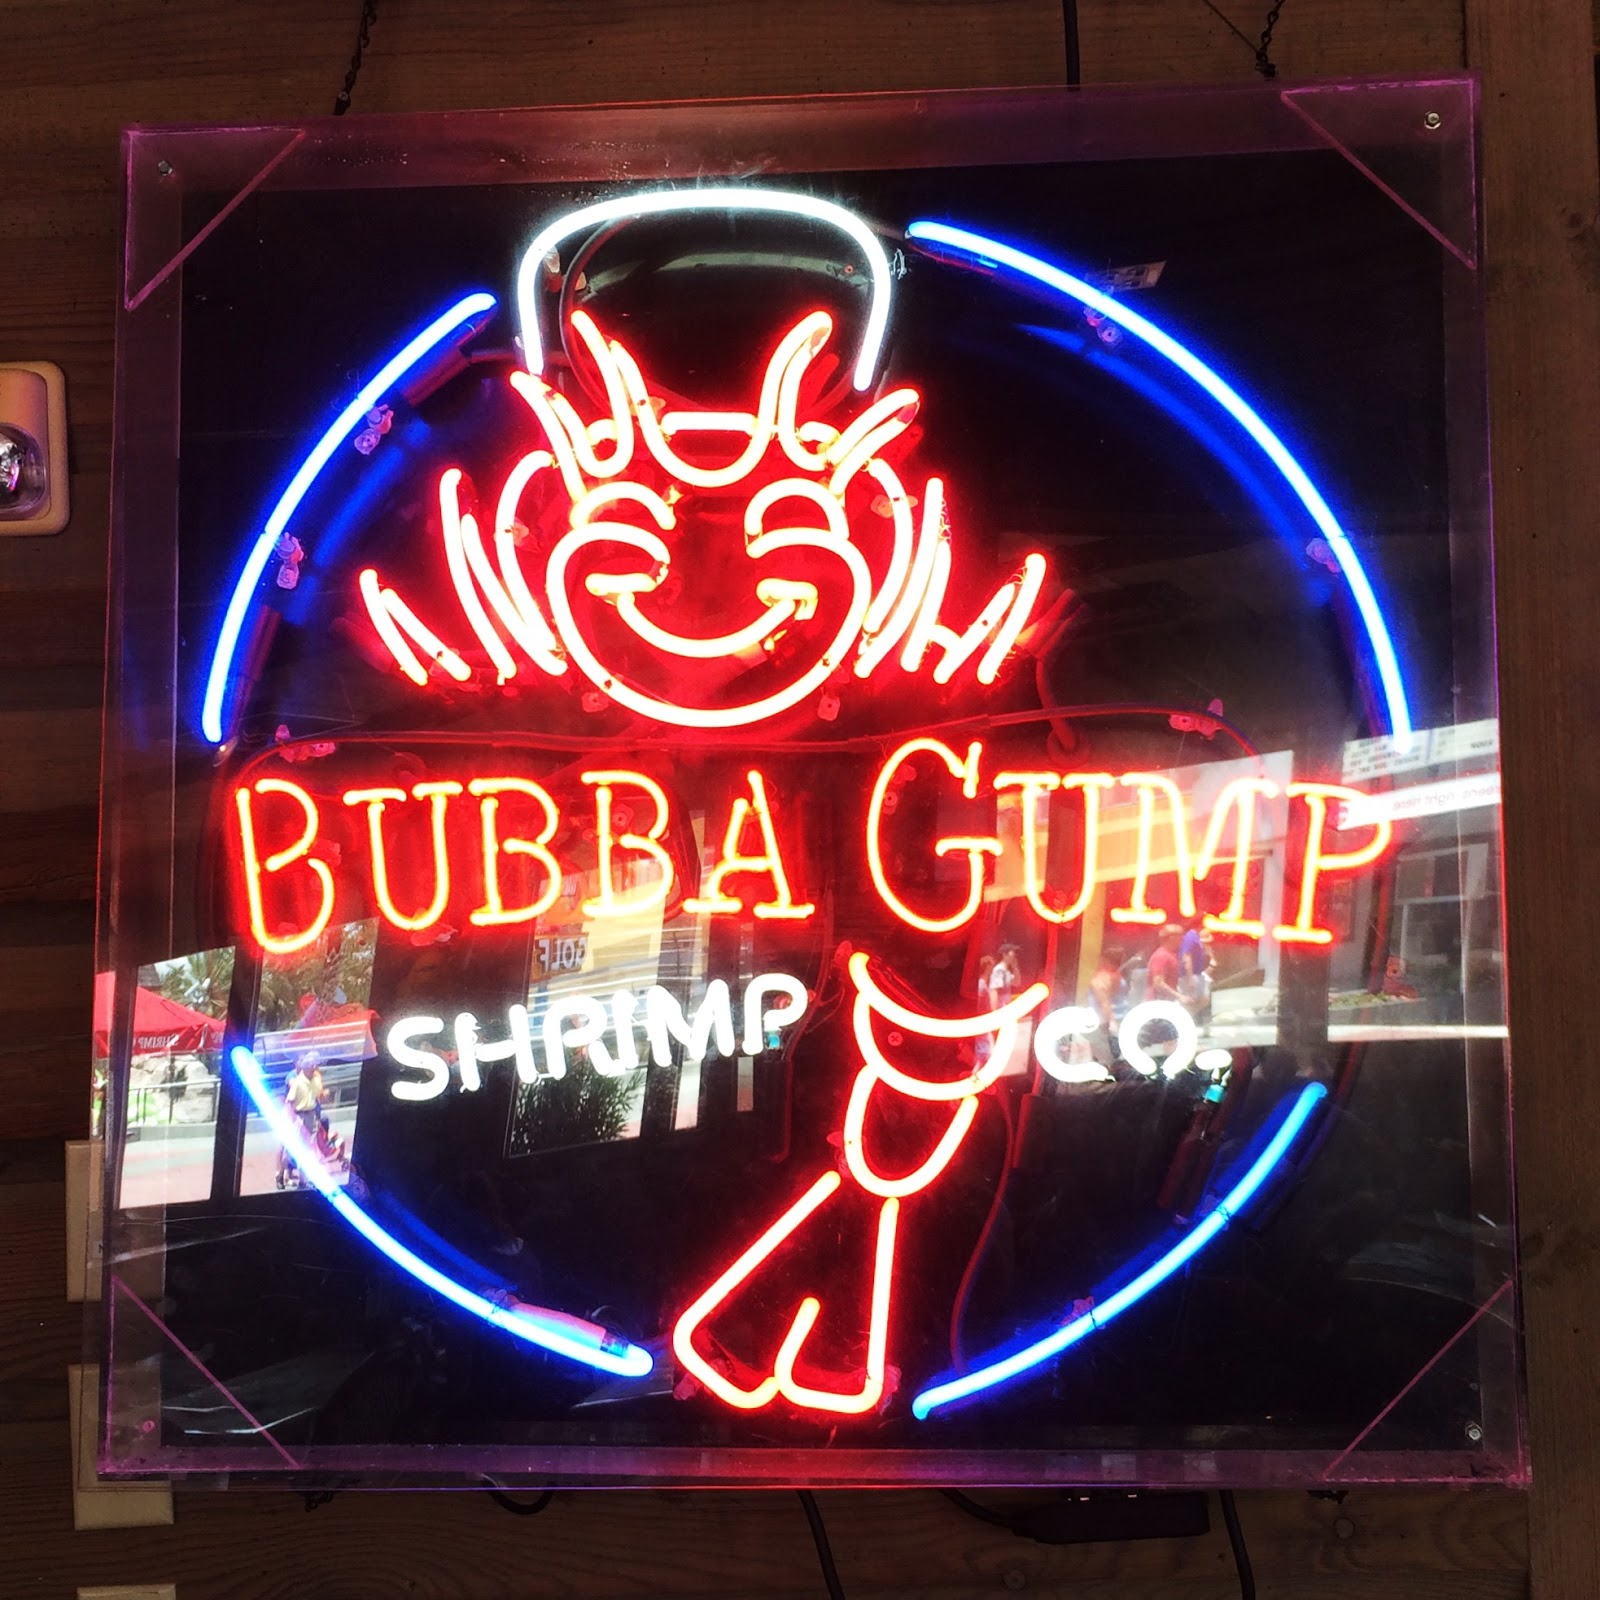 Bubba Gump Shrimp Co, Orlando